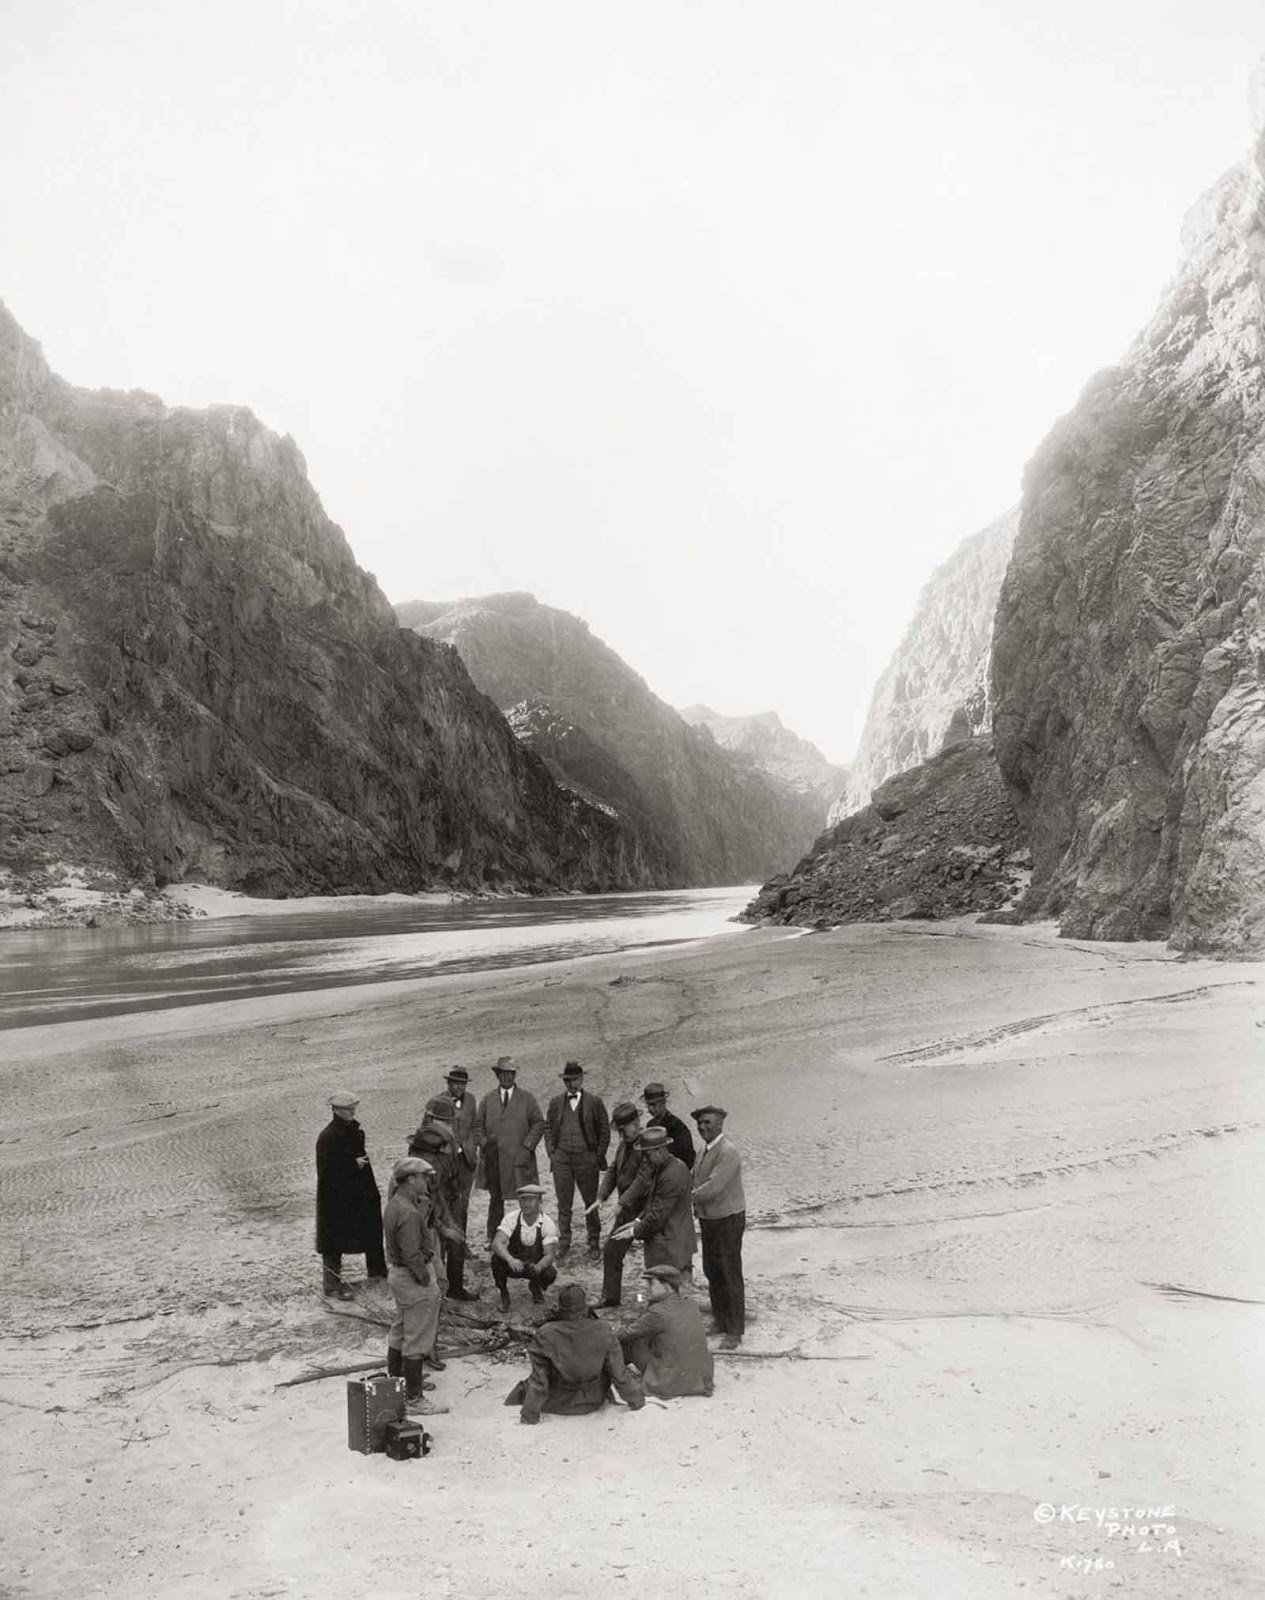 An inspection party near the proposed site of the dam in the Black Canyon on the Colorado River. 1928.